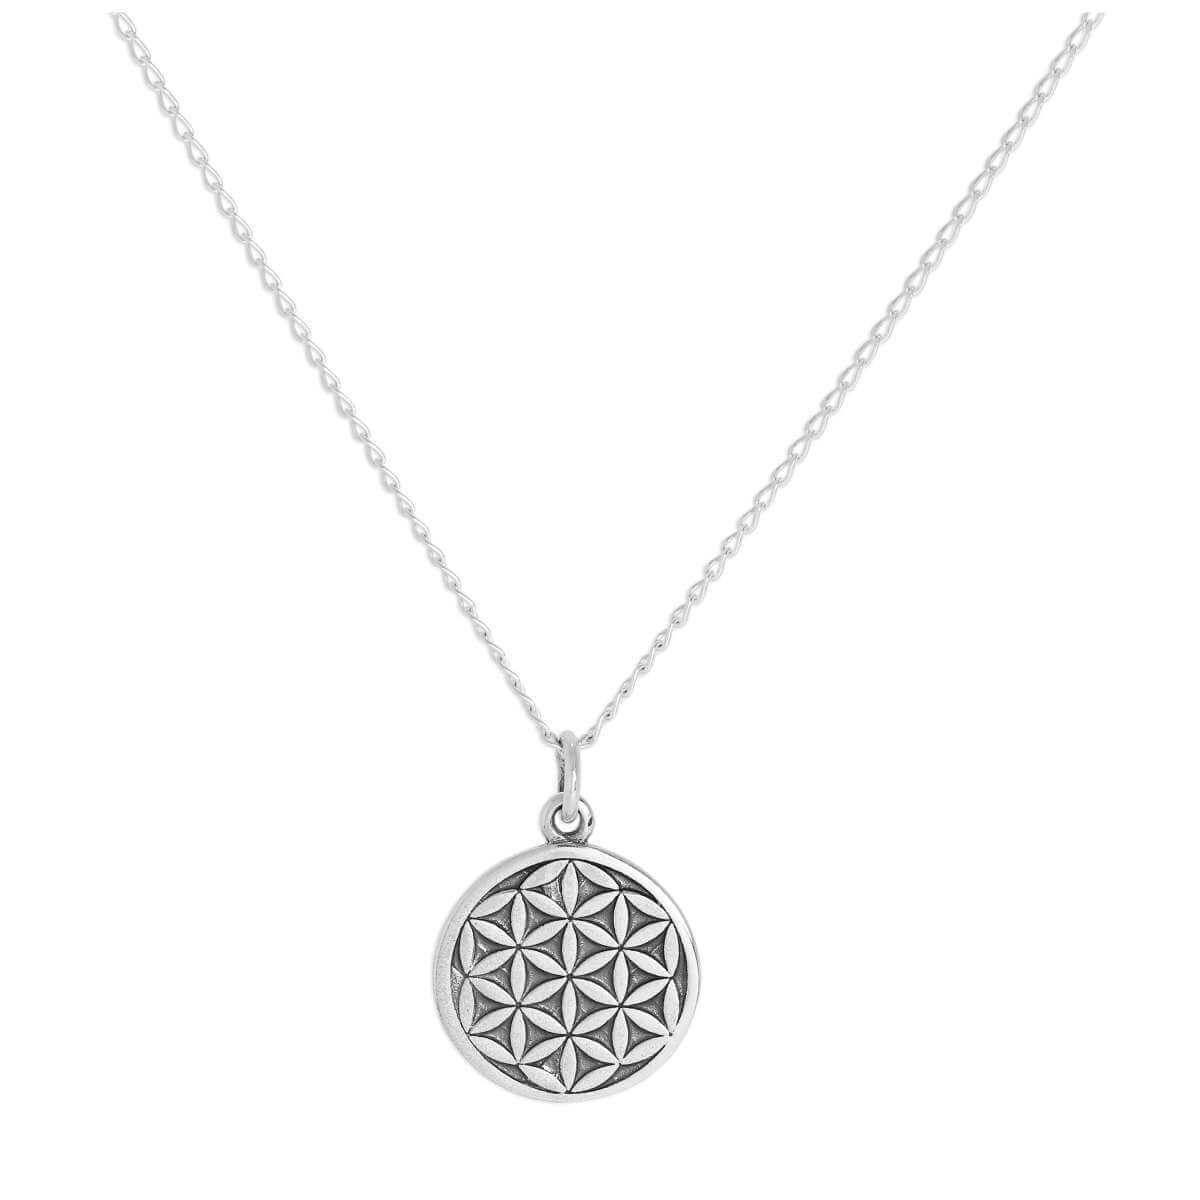 Sterling Silver Flower of Life Pendant on Chain 14 - 32 Inches